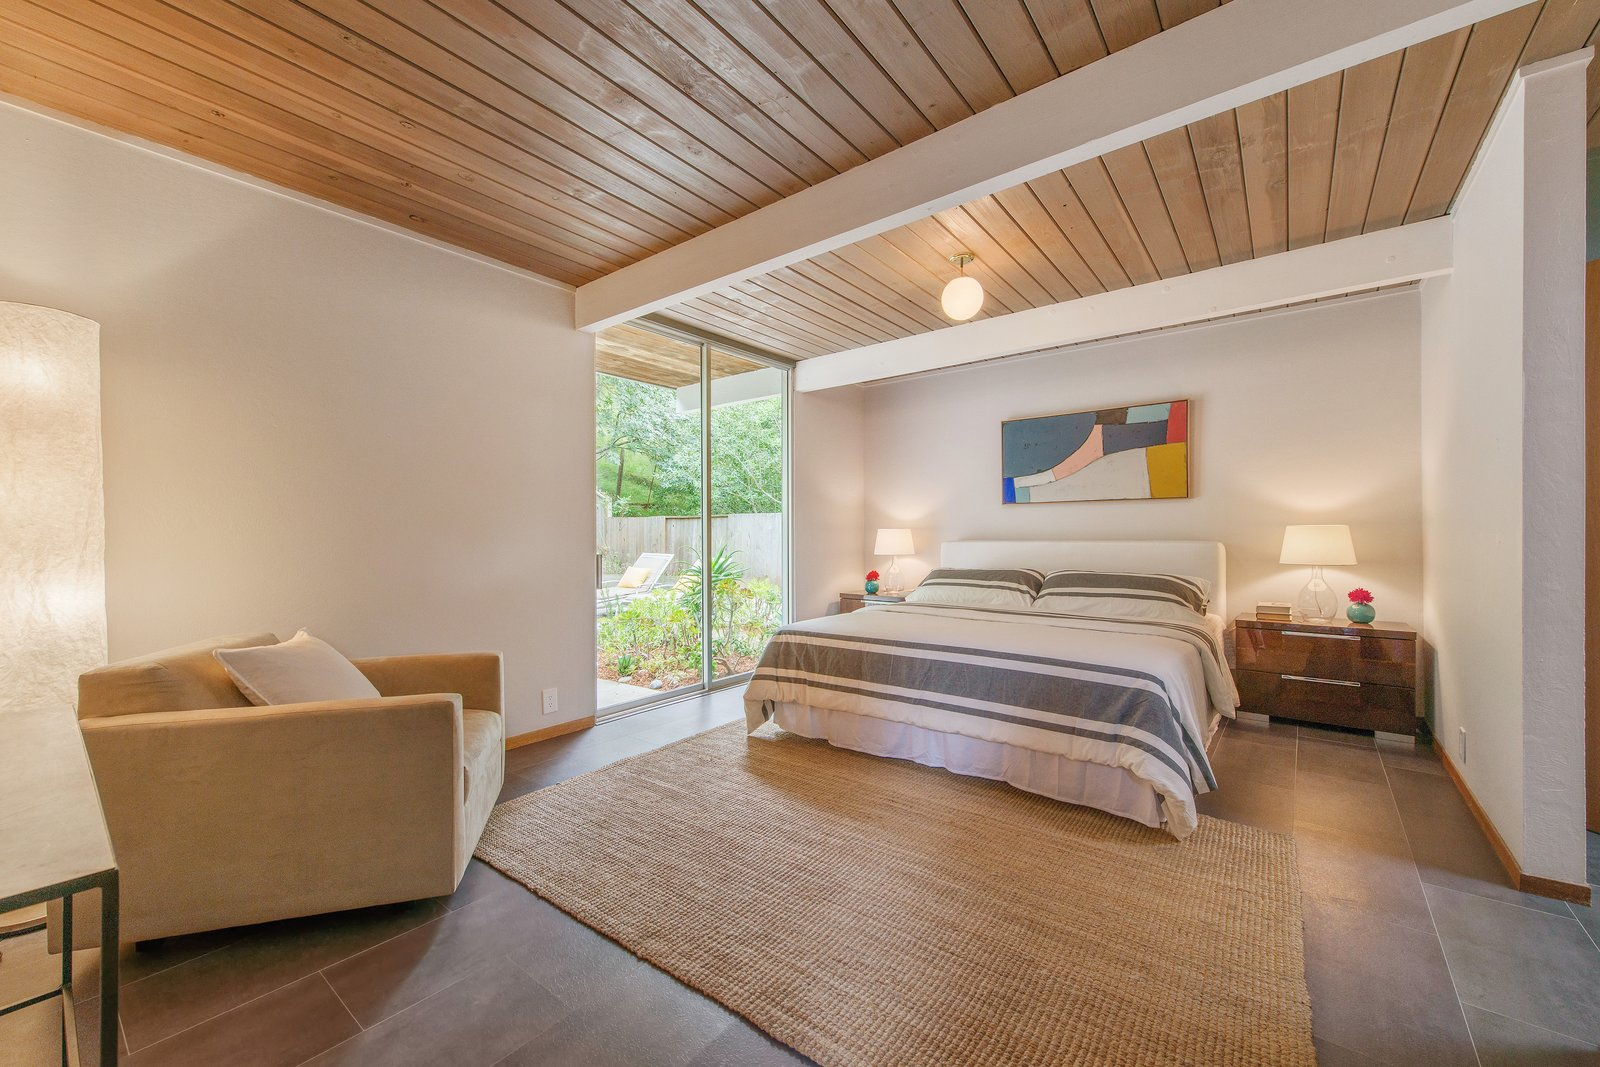 Bedroom, Bed, Night Stands, Laminate Floor, Rug Floor, Table Lighting, Ceiling Lighting, and Chair The master bedroom offers tremendous space, as well as a large floor-to-ceiling window.     Photo 8 of 14 in Live Large in This Extra-Spacious Eichler That's Asking $1.38M